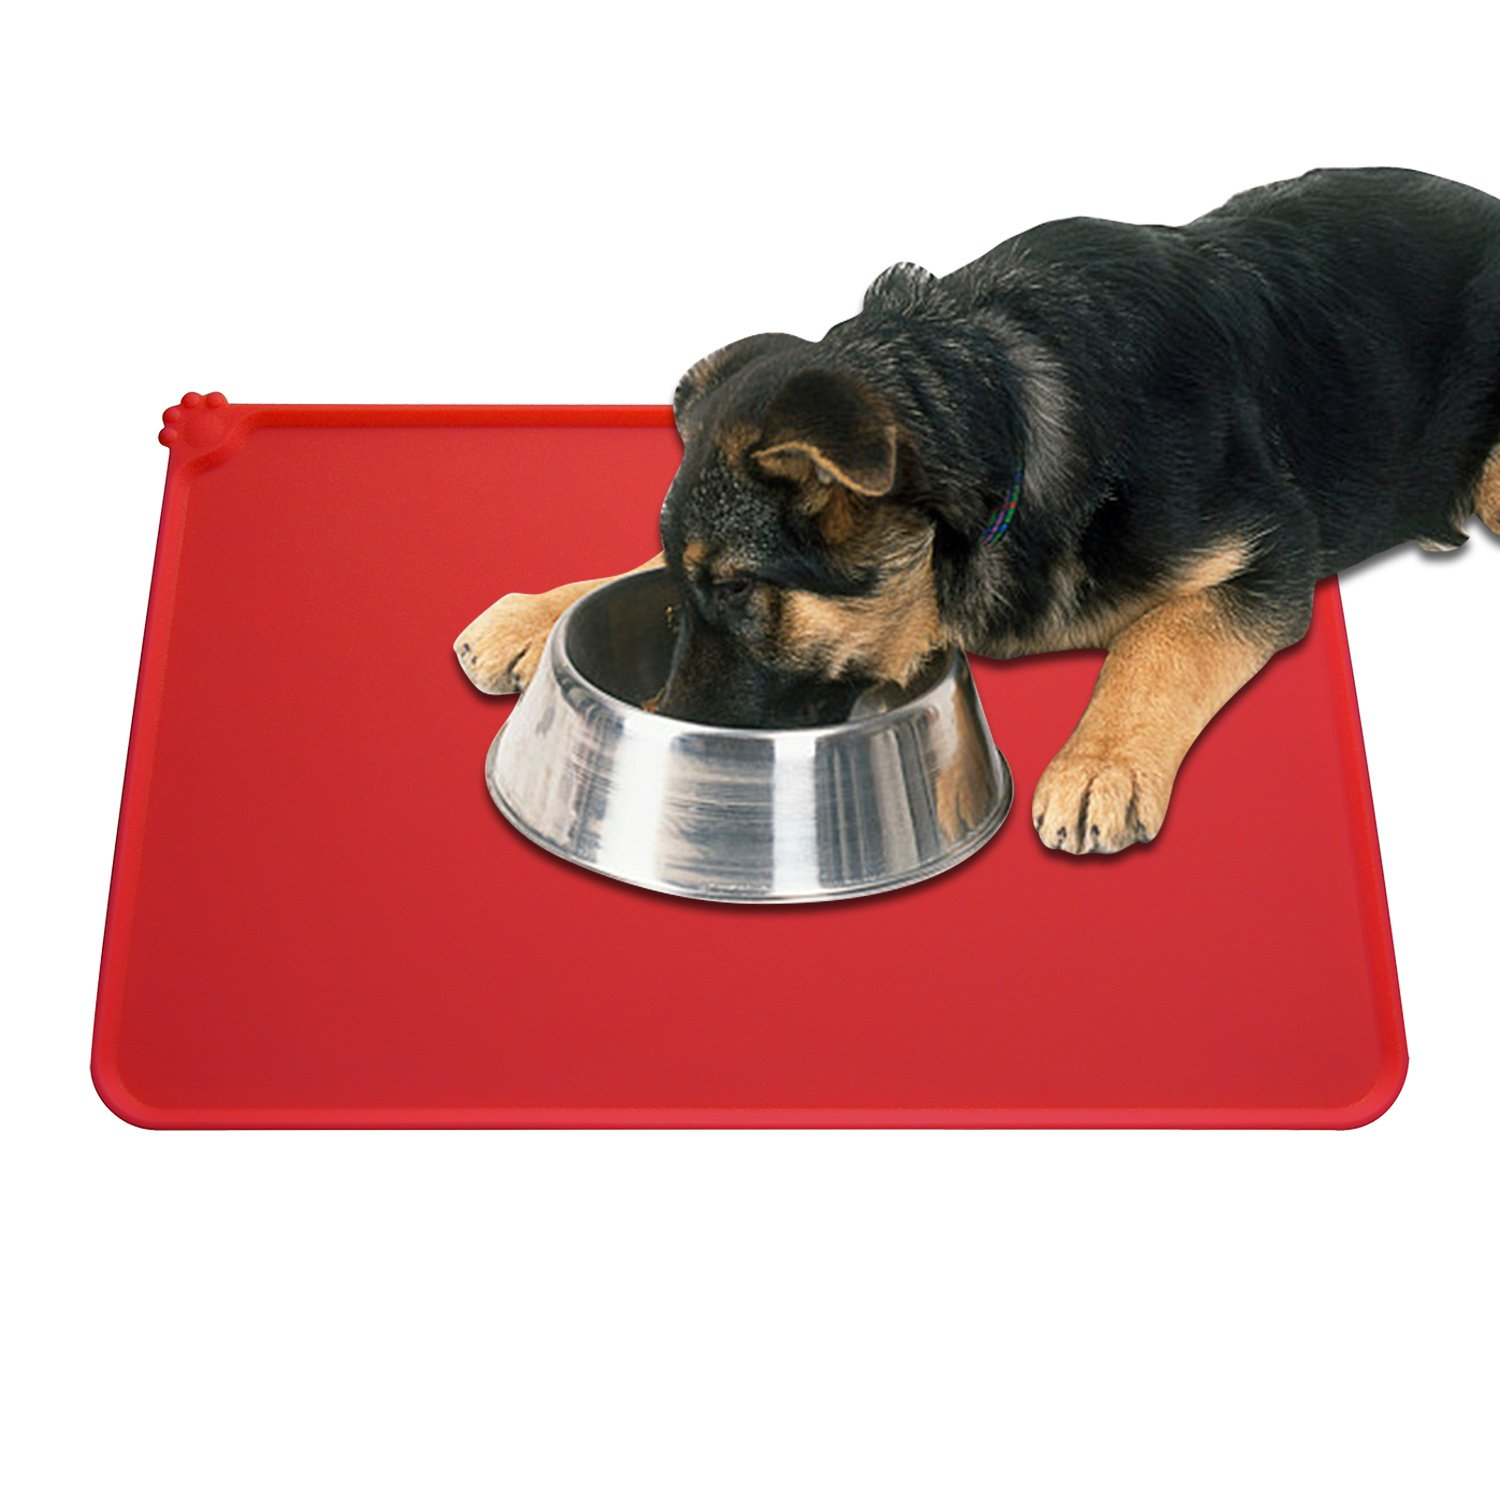 Guardians Dog Food Mat, Silicone Pet Feeding Mats, Non Slip Waterproof Cat Bowl Trays Food Container Placemat for Small Animals (18.5''x11.8'', Red) by Guardians (Image #3)